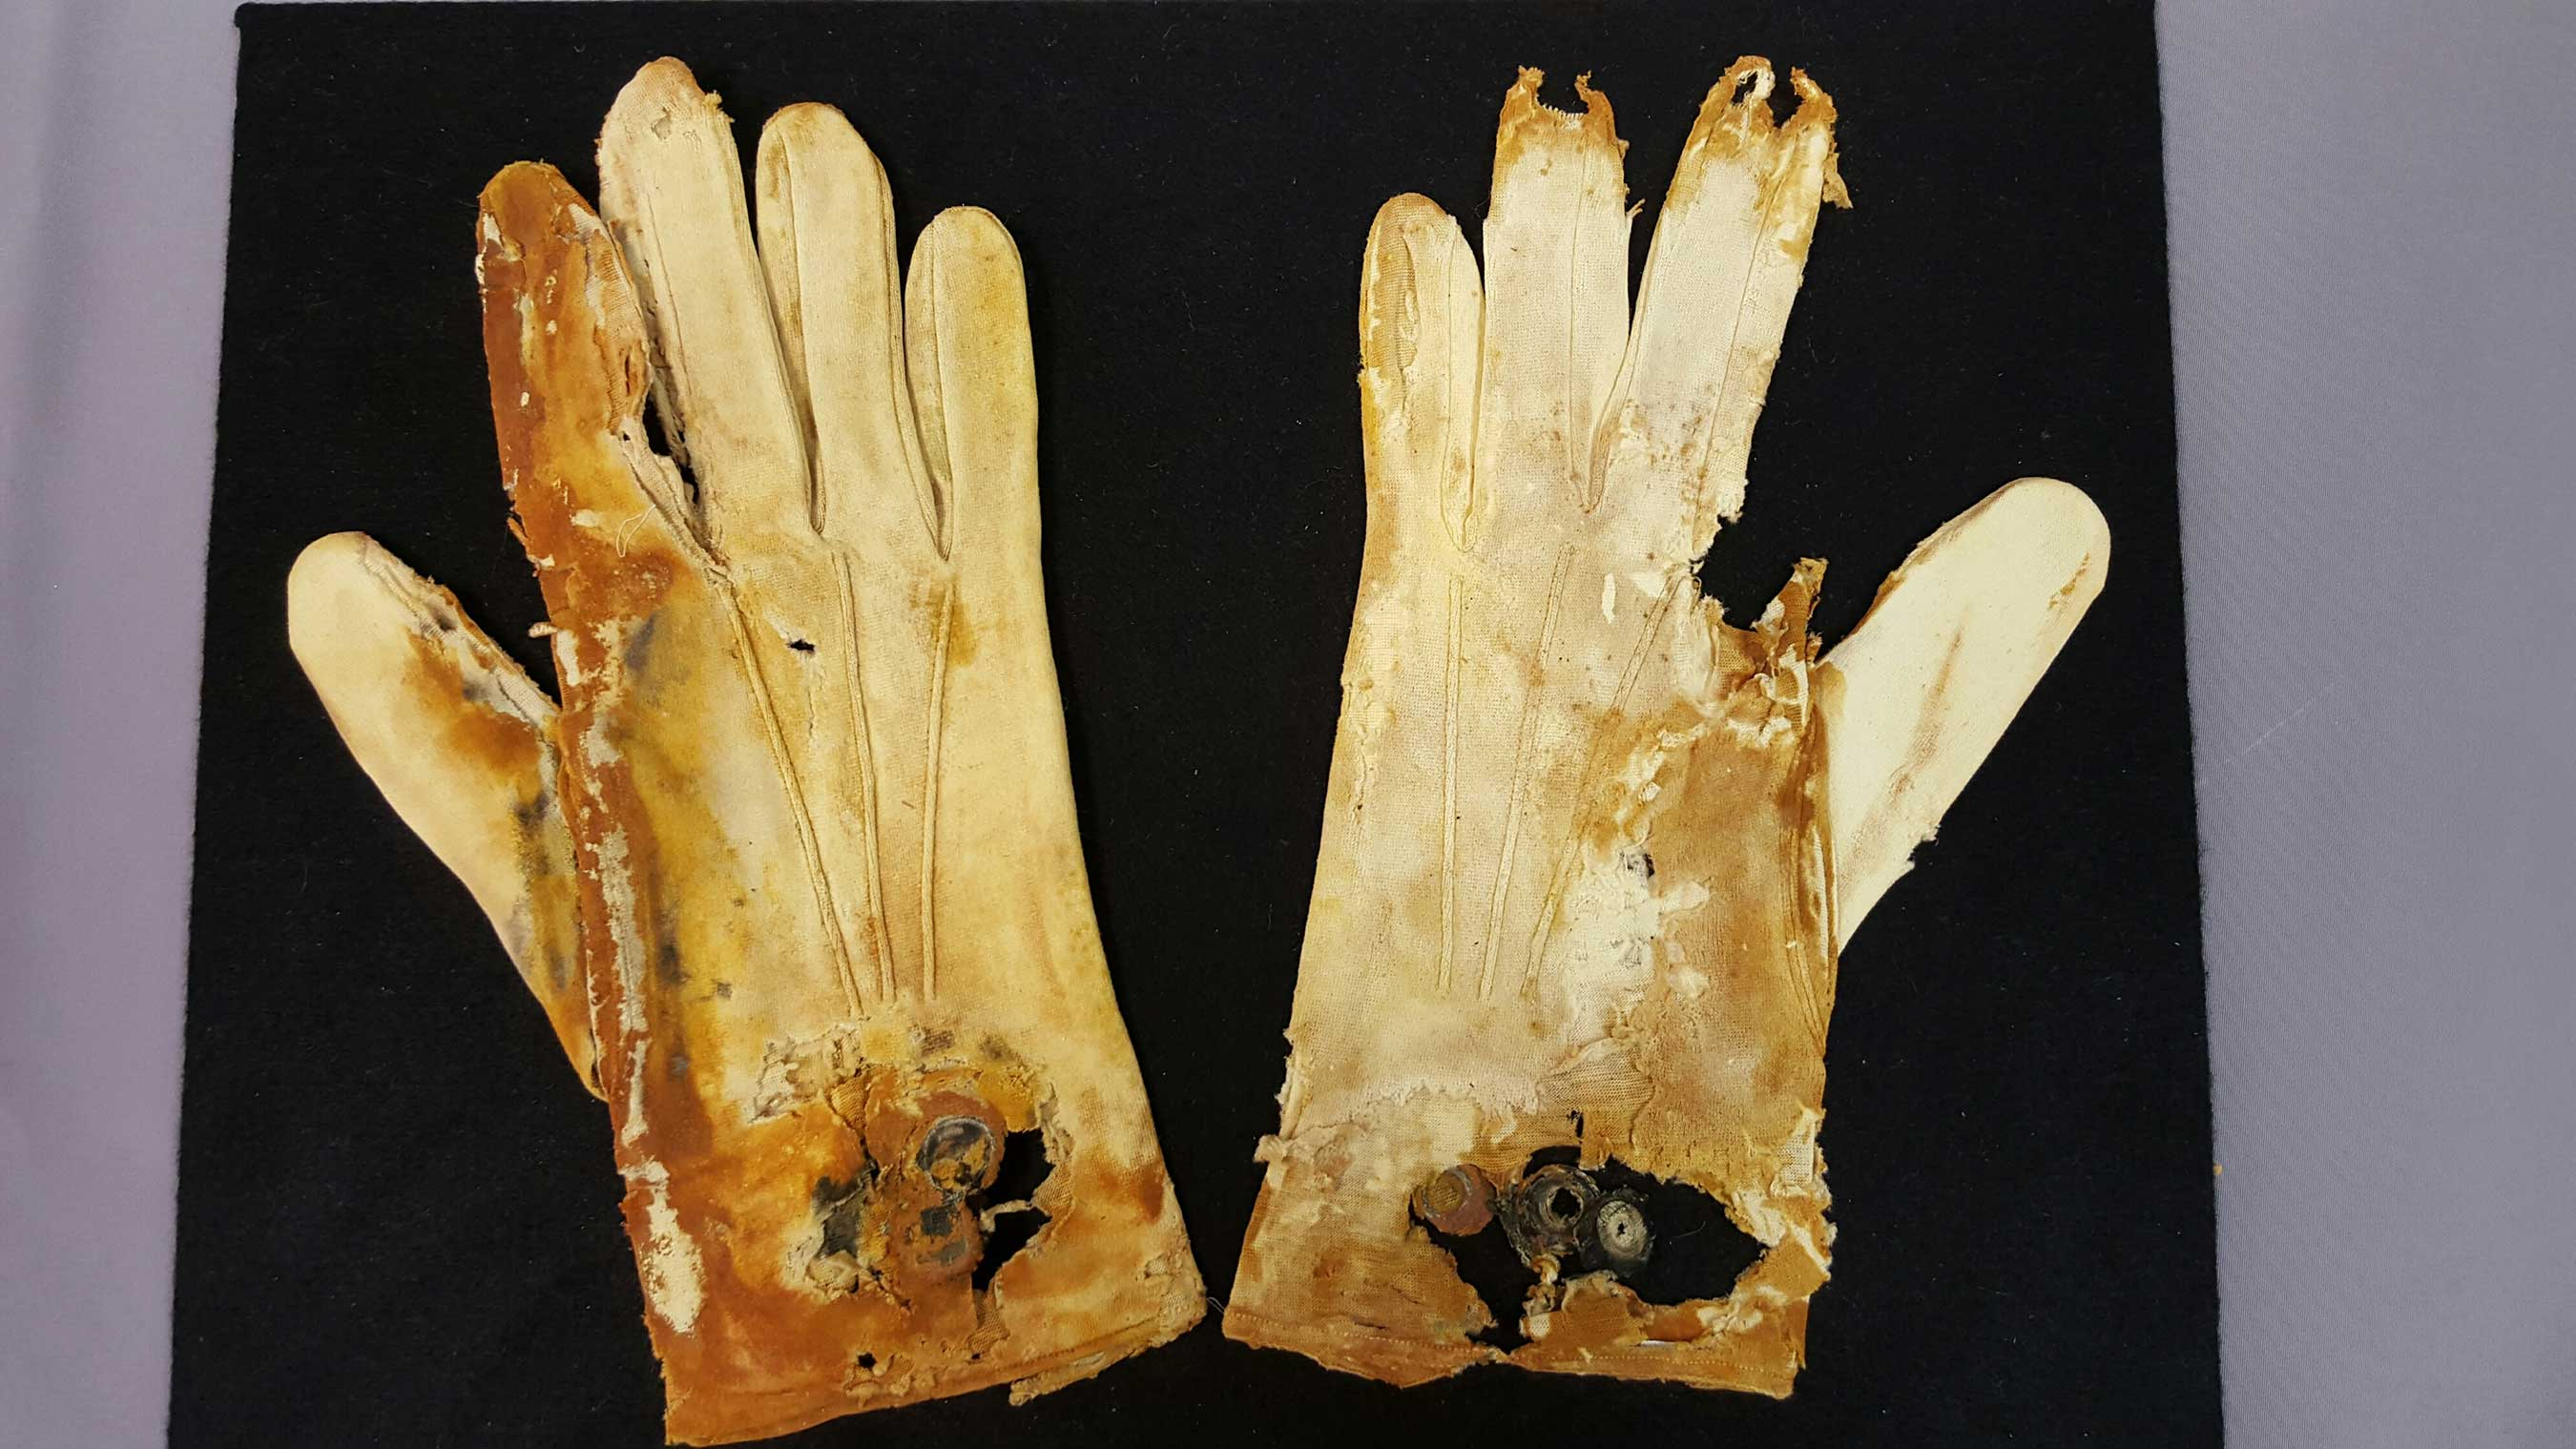 This degraded pair of cotton gloves was originally white and probably belonged to a gentleman. They are still attached at the cuff, so they had not yet been worn. (Credit Premier Exhibitions)